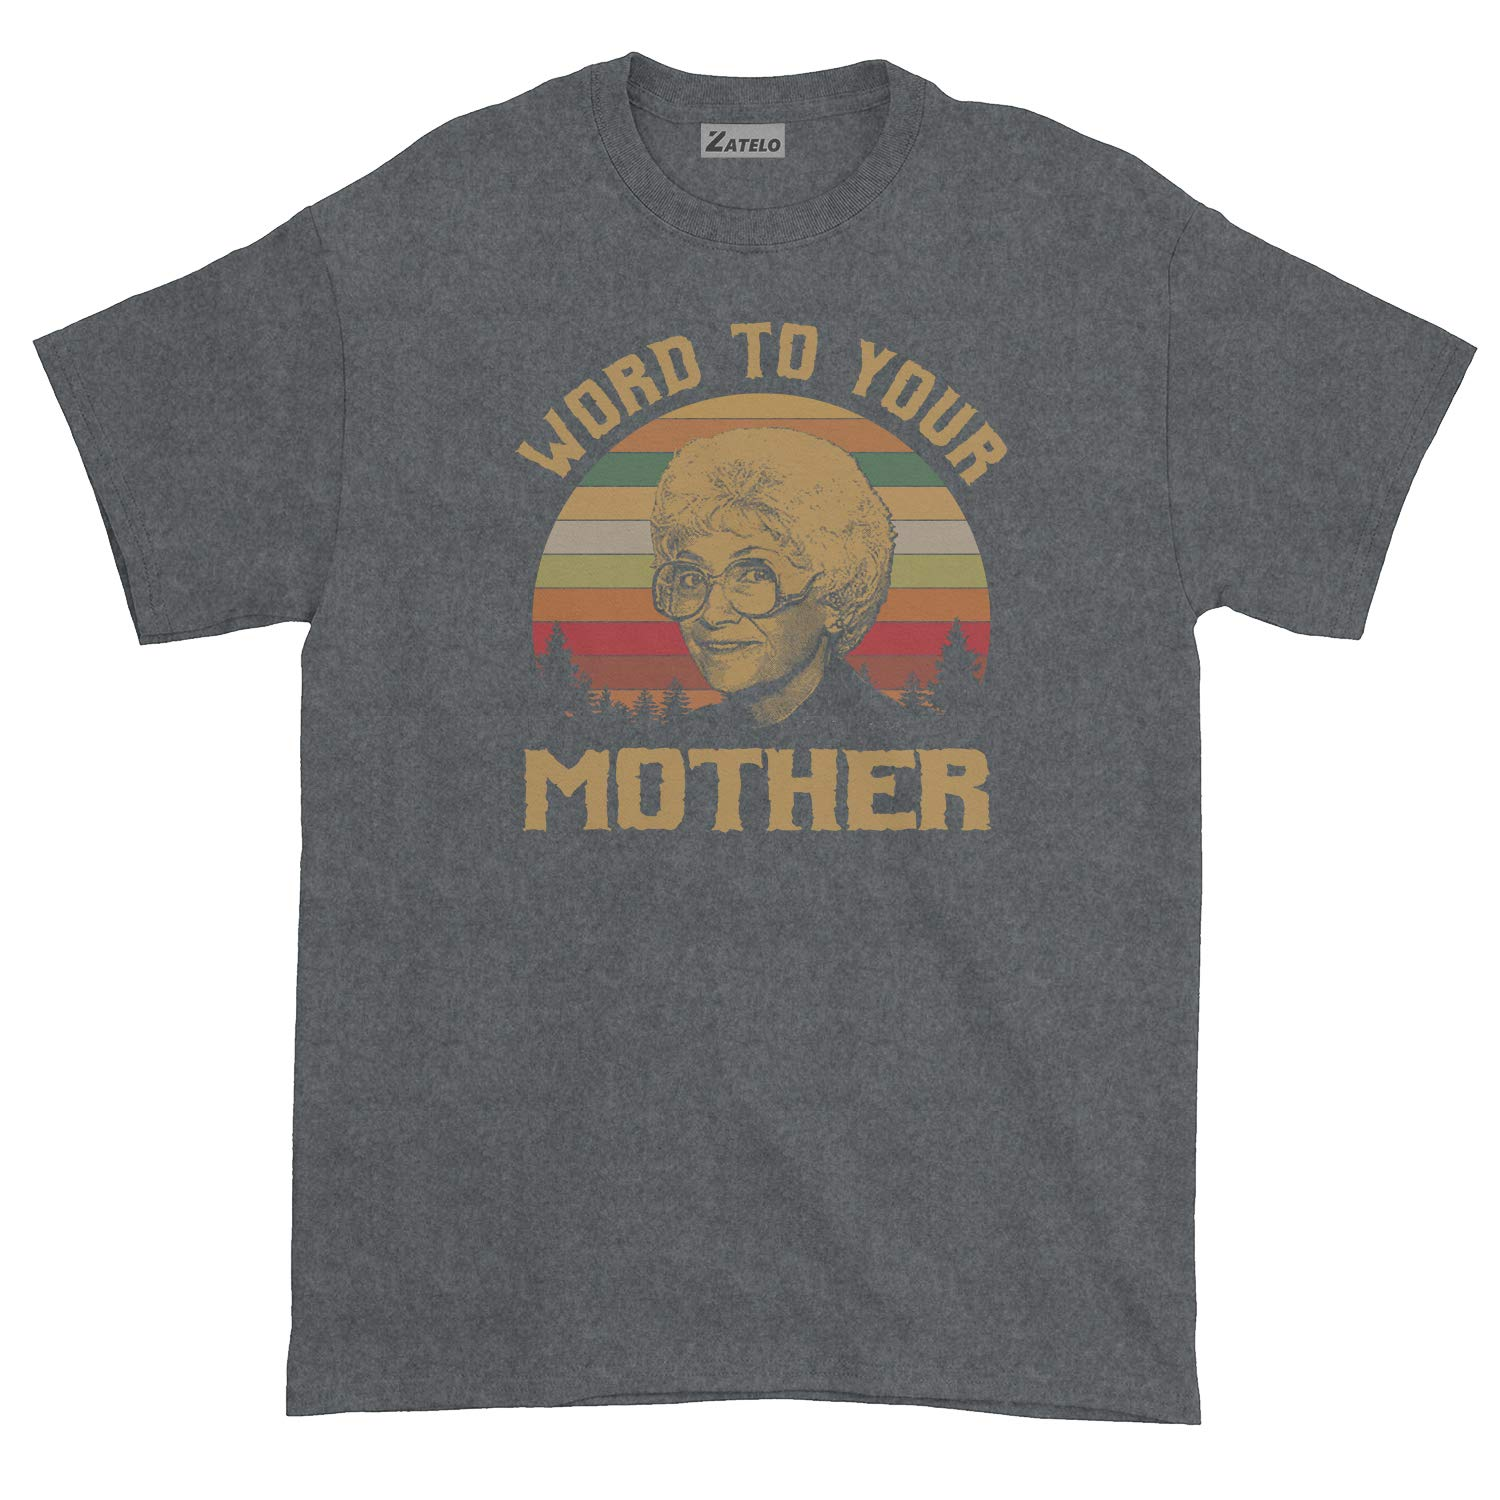 Vintage Retro T-Shirt Word to Your Mother